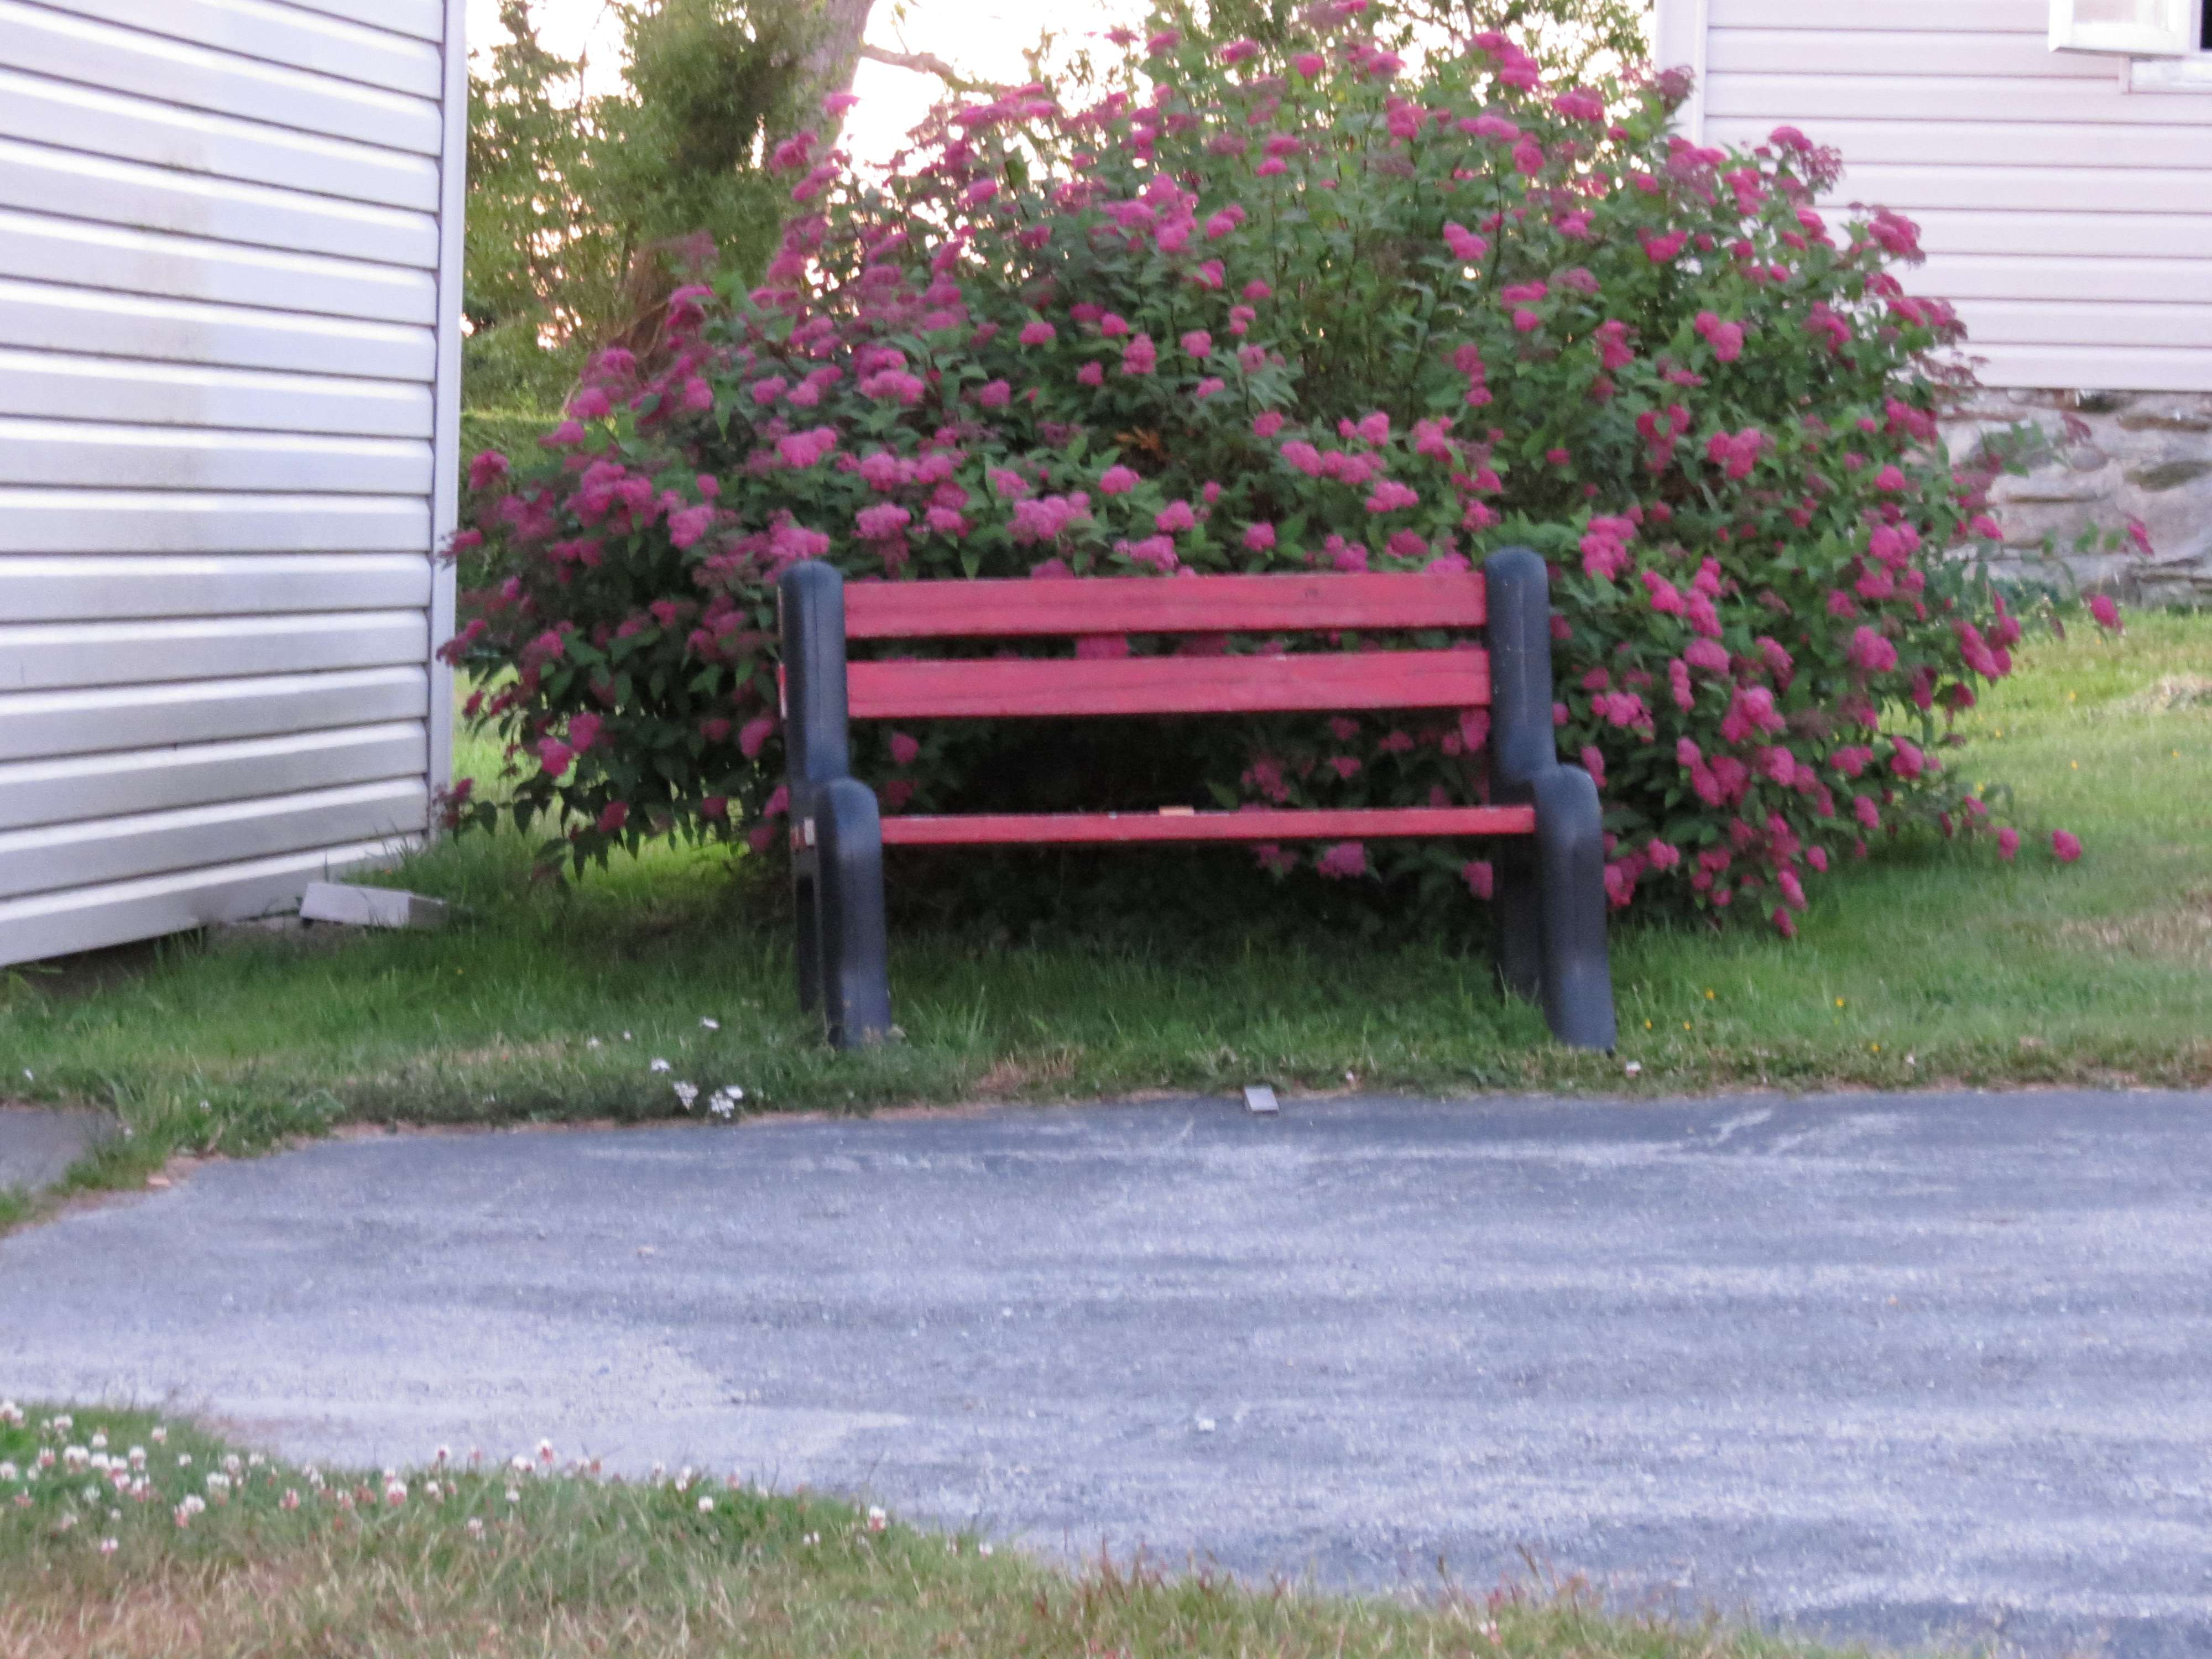 A bench with flowers in Lower East Pubnico.